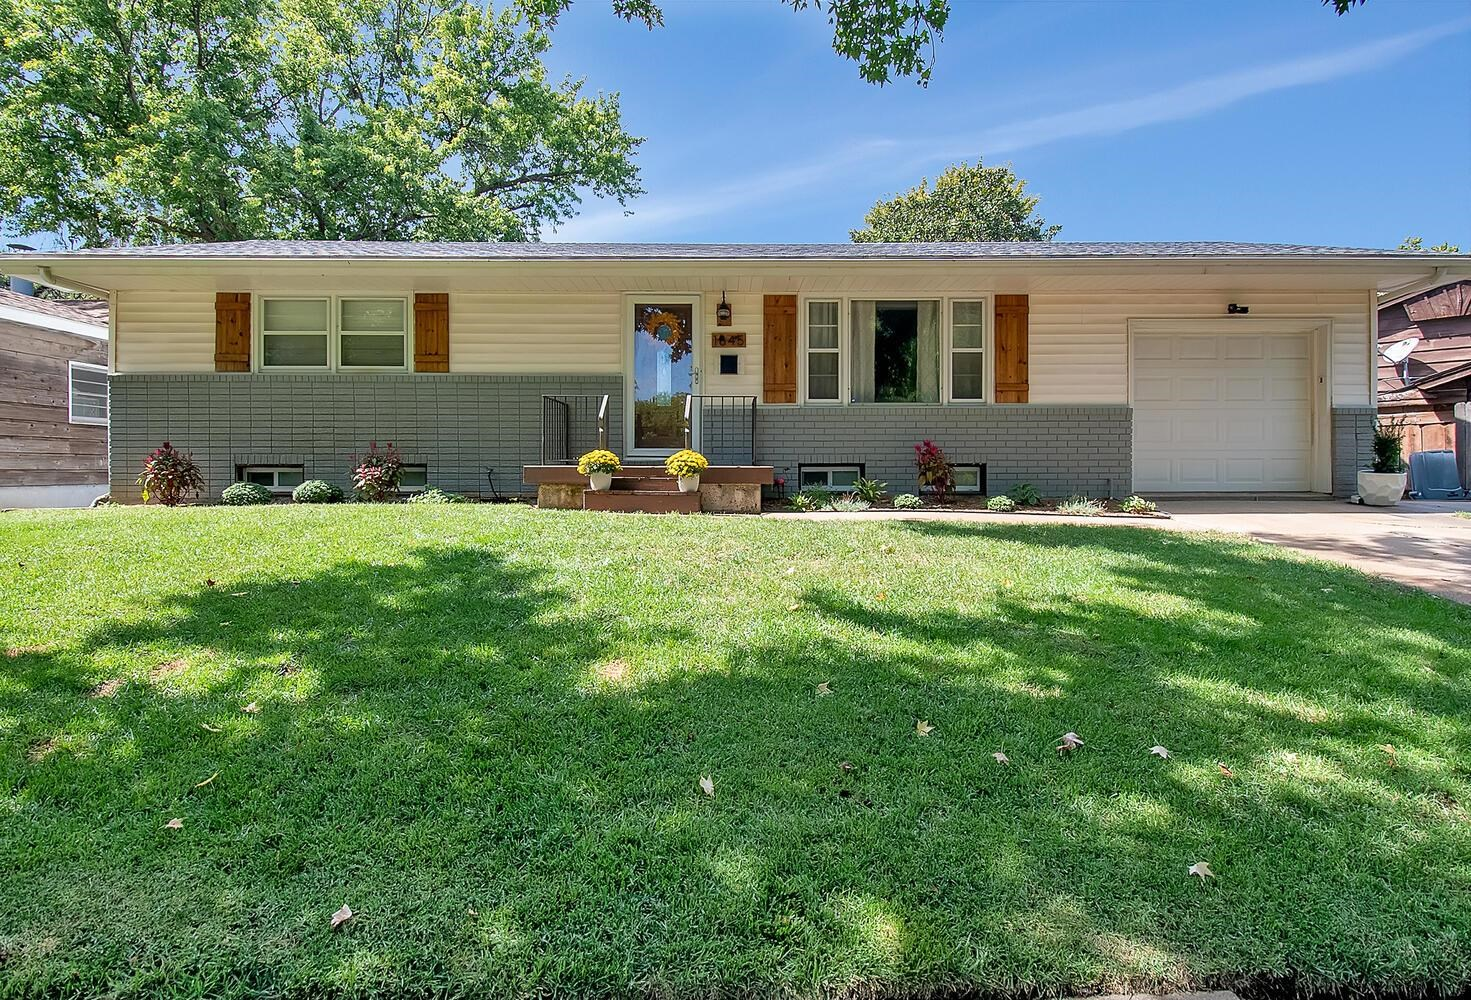 Beautiful ranch style home in a great Wichita neighborhood! The owners have kept this property in ex